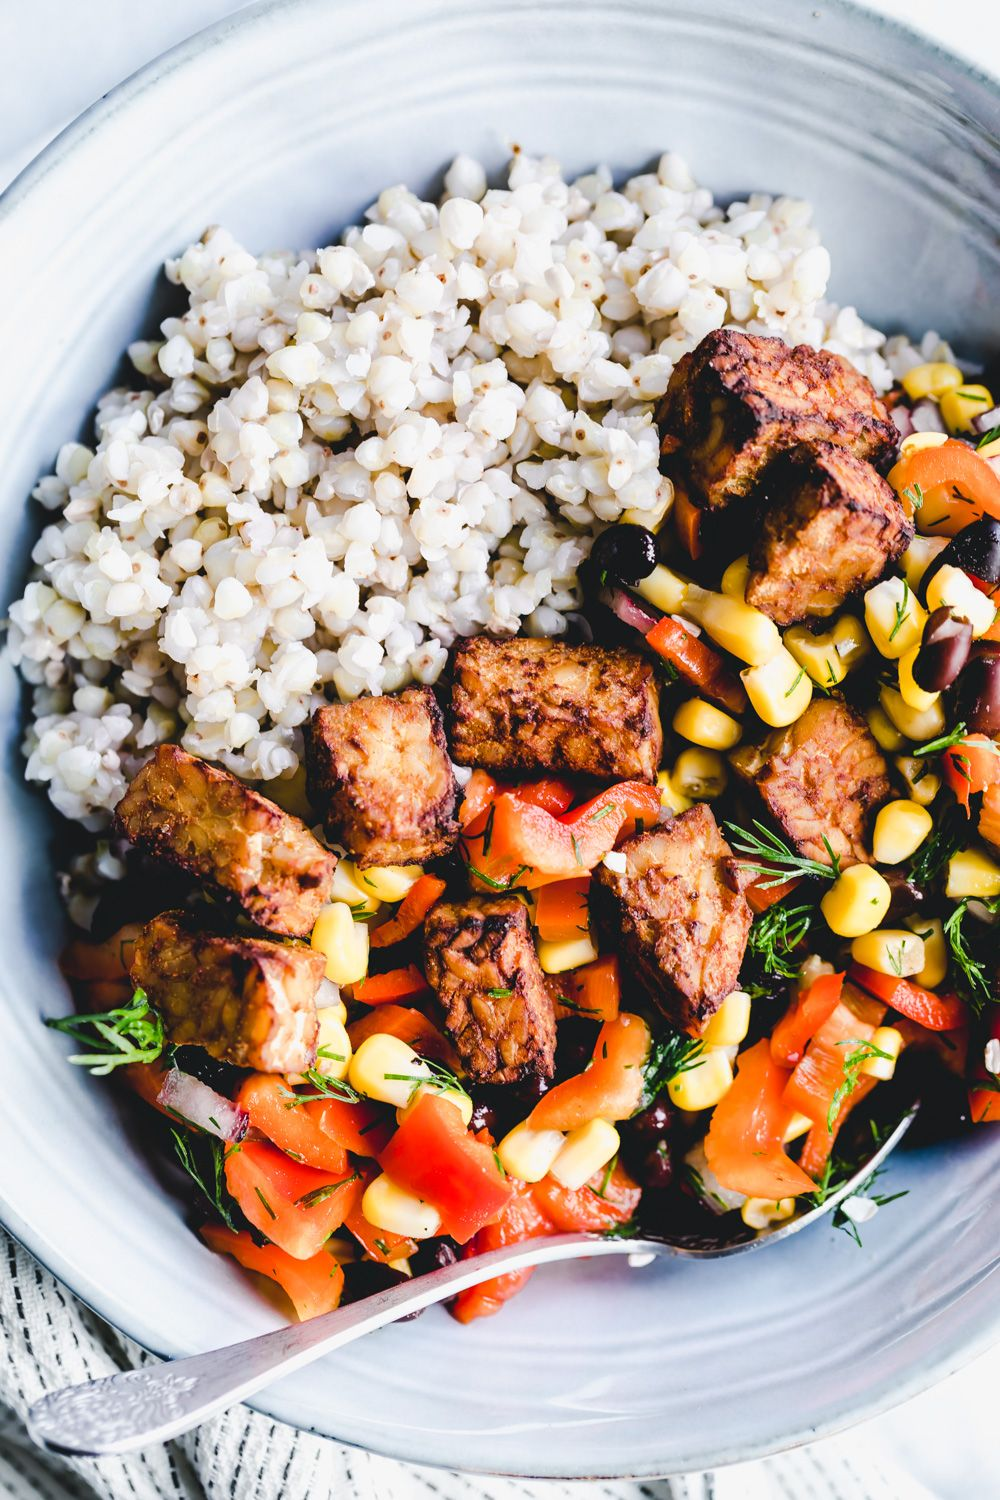 Easy Baked Tempeh The Green Creator Easy Baked Tempeh Recipe In 2020 Baked Tempeh Vegan Recipes Healthy Vegan Fast Food